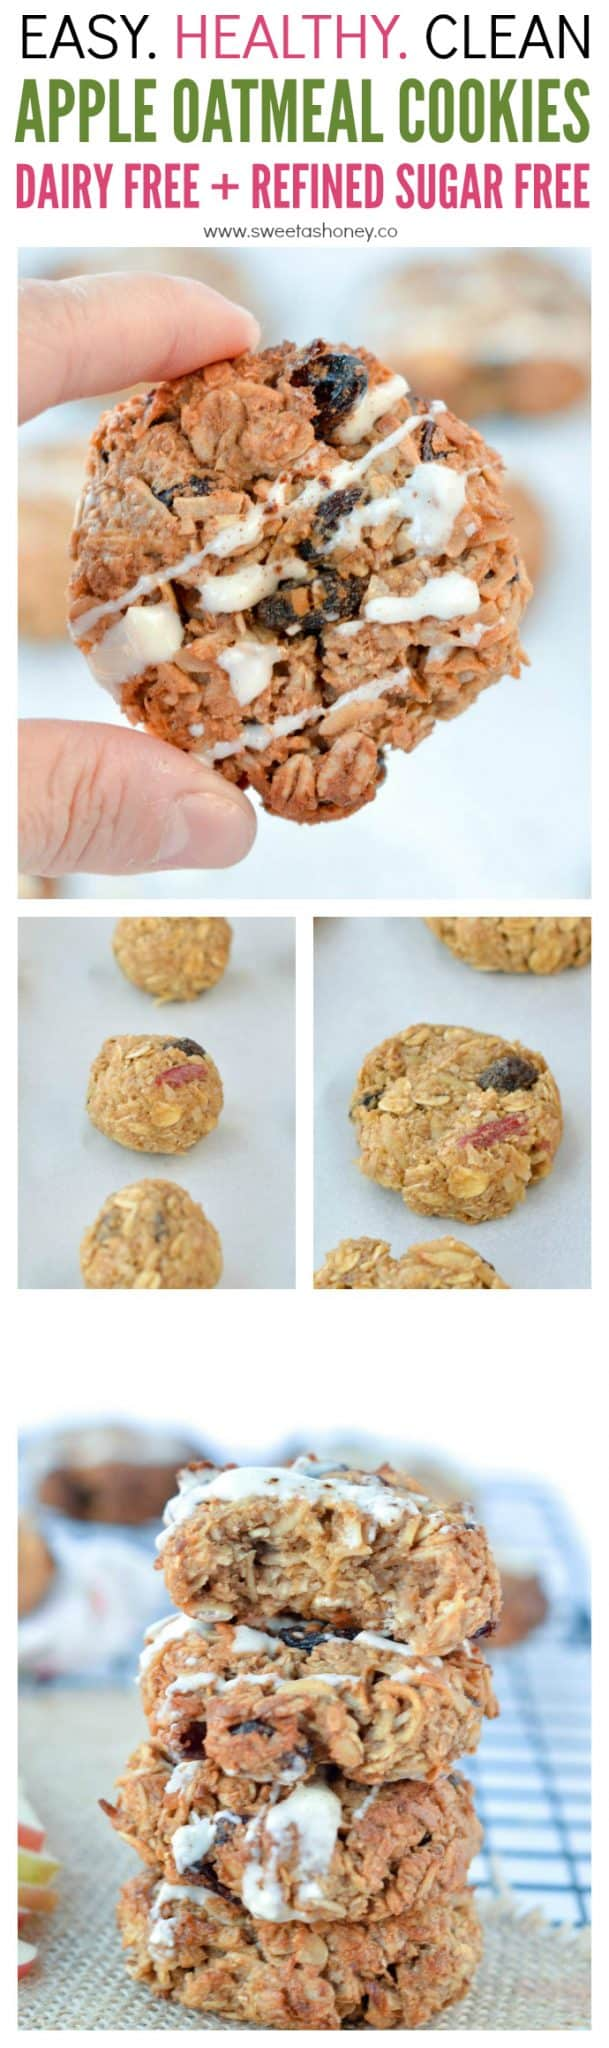 Heallthy Apple oatmeal cookies are the best healthy breakfast cookies. An easy recipe with no flour, no refined sugar and 100% natural ingredients. A great clean cookie, soft, moist with a delicious cinnamon apple flavor.